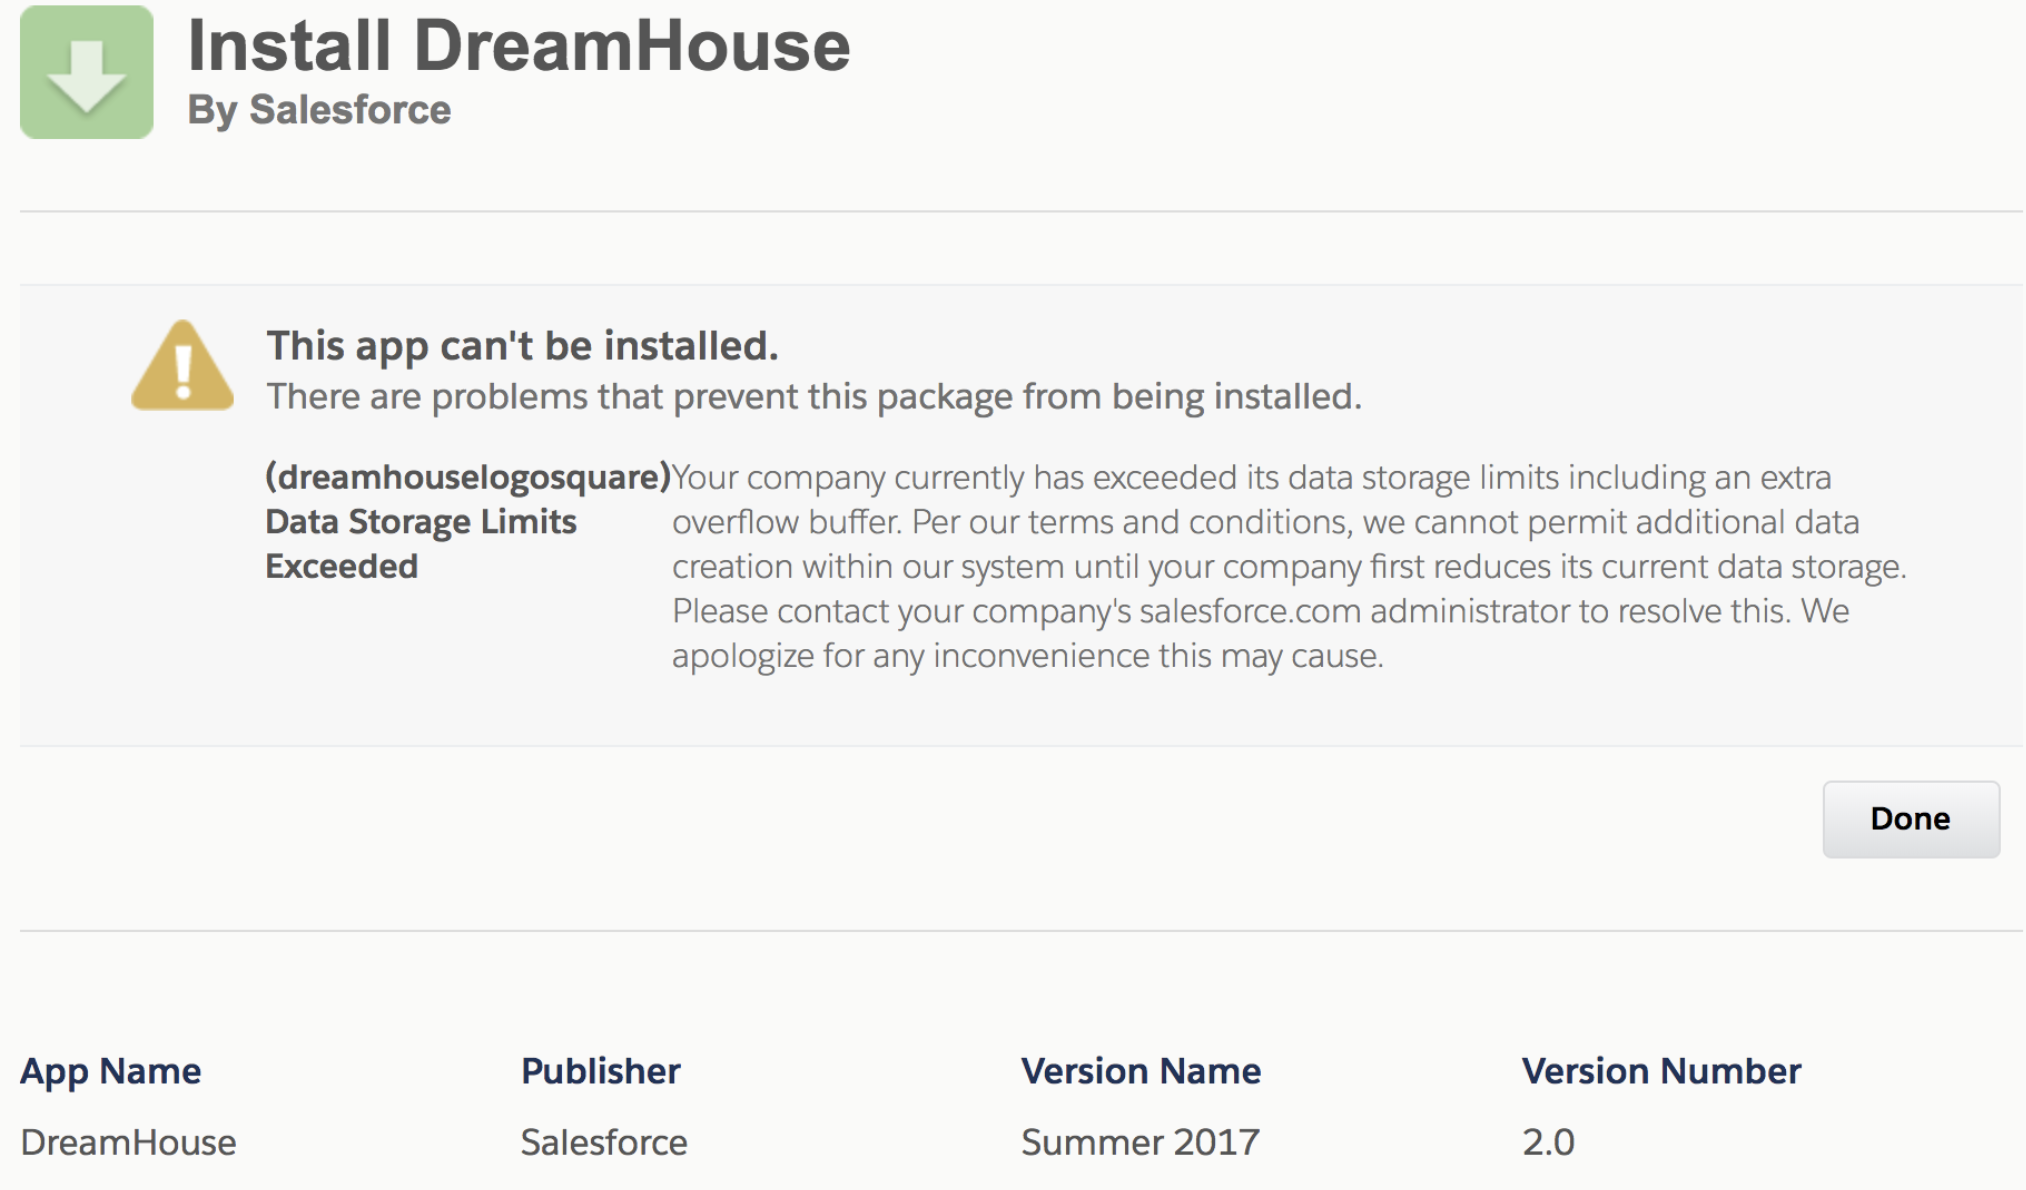 Blocked in Trailhead- Dreamhouse app install in playground